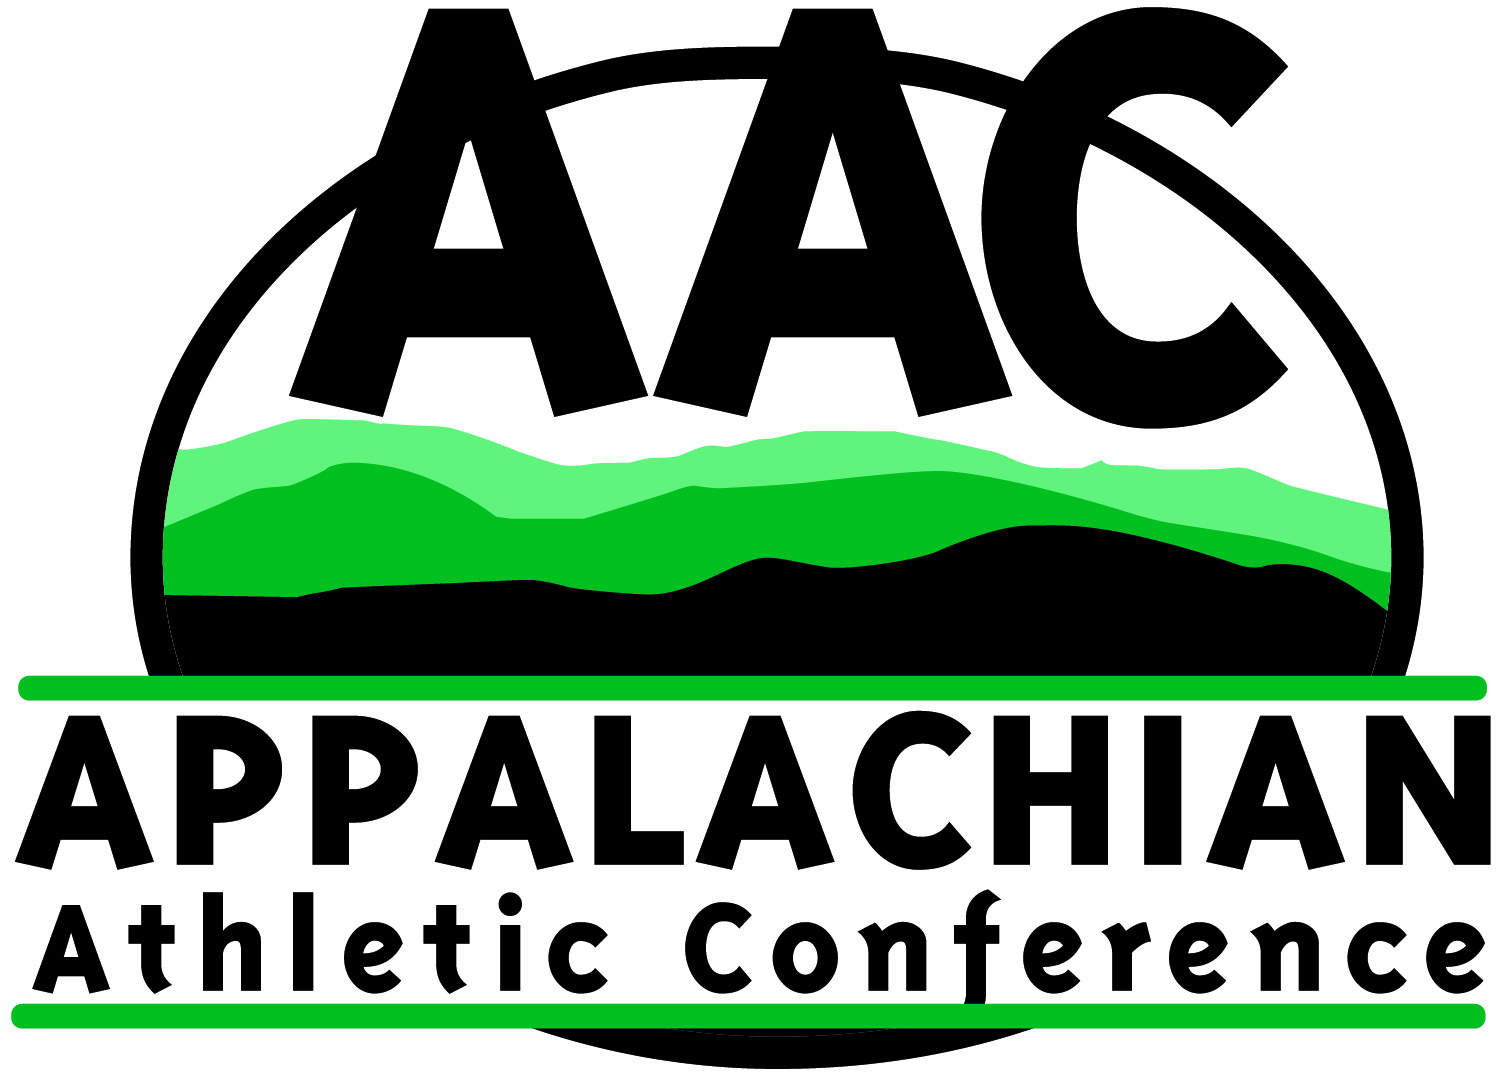 AAC - Appalachian Athletic Conference logo